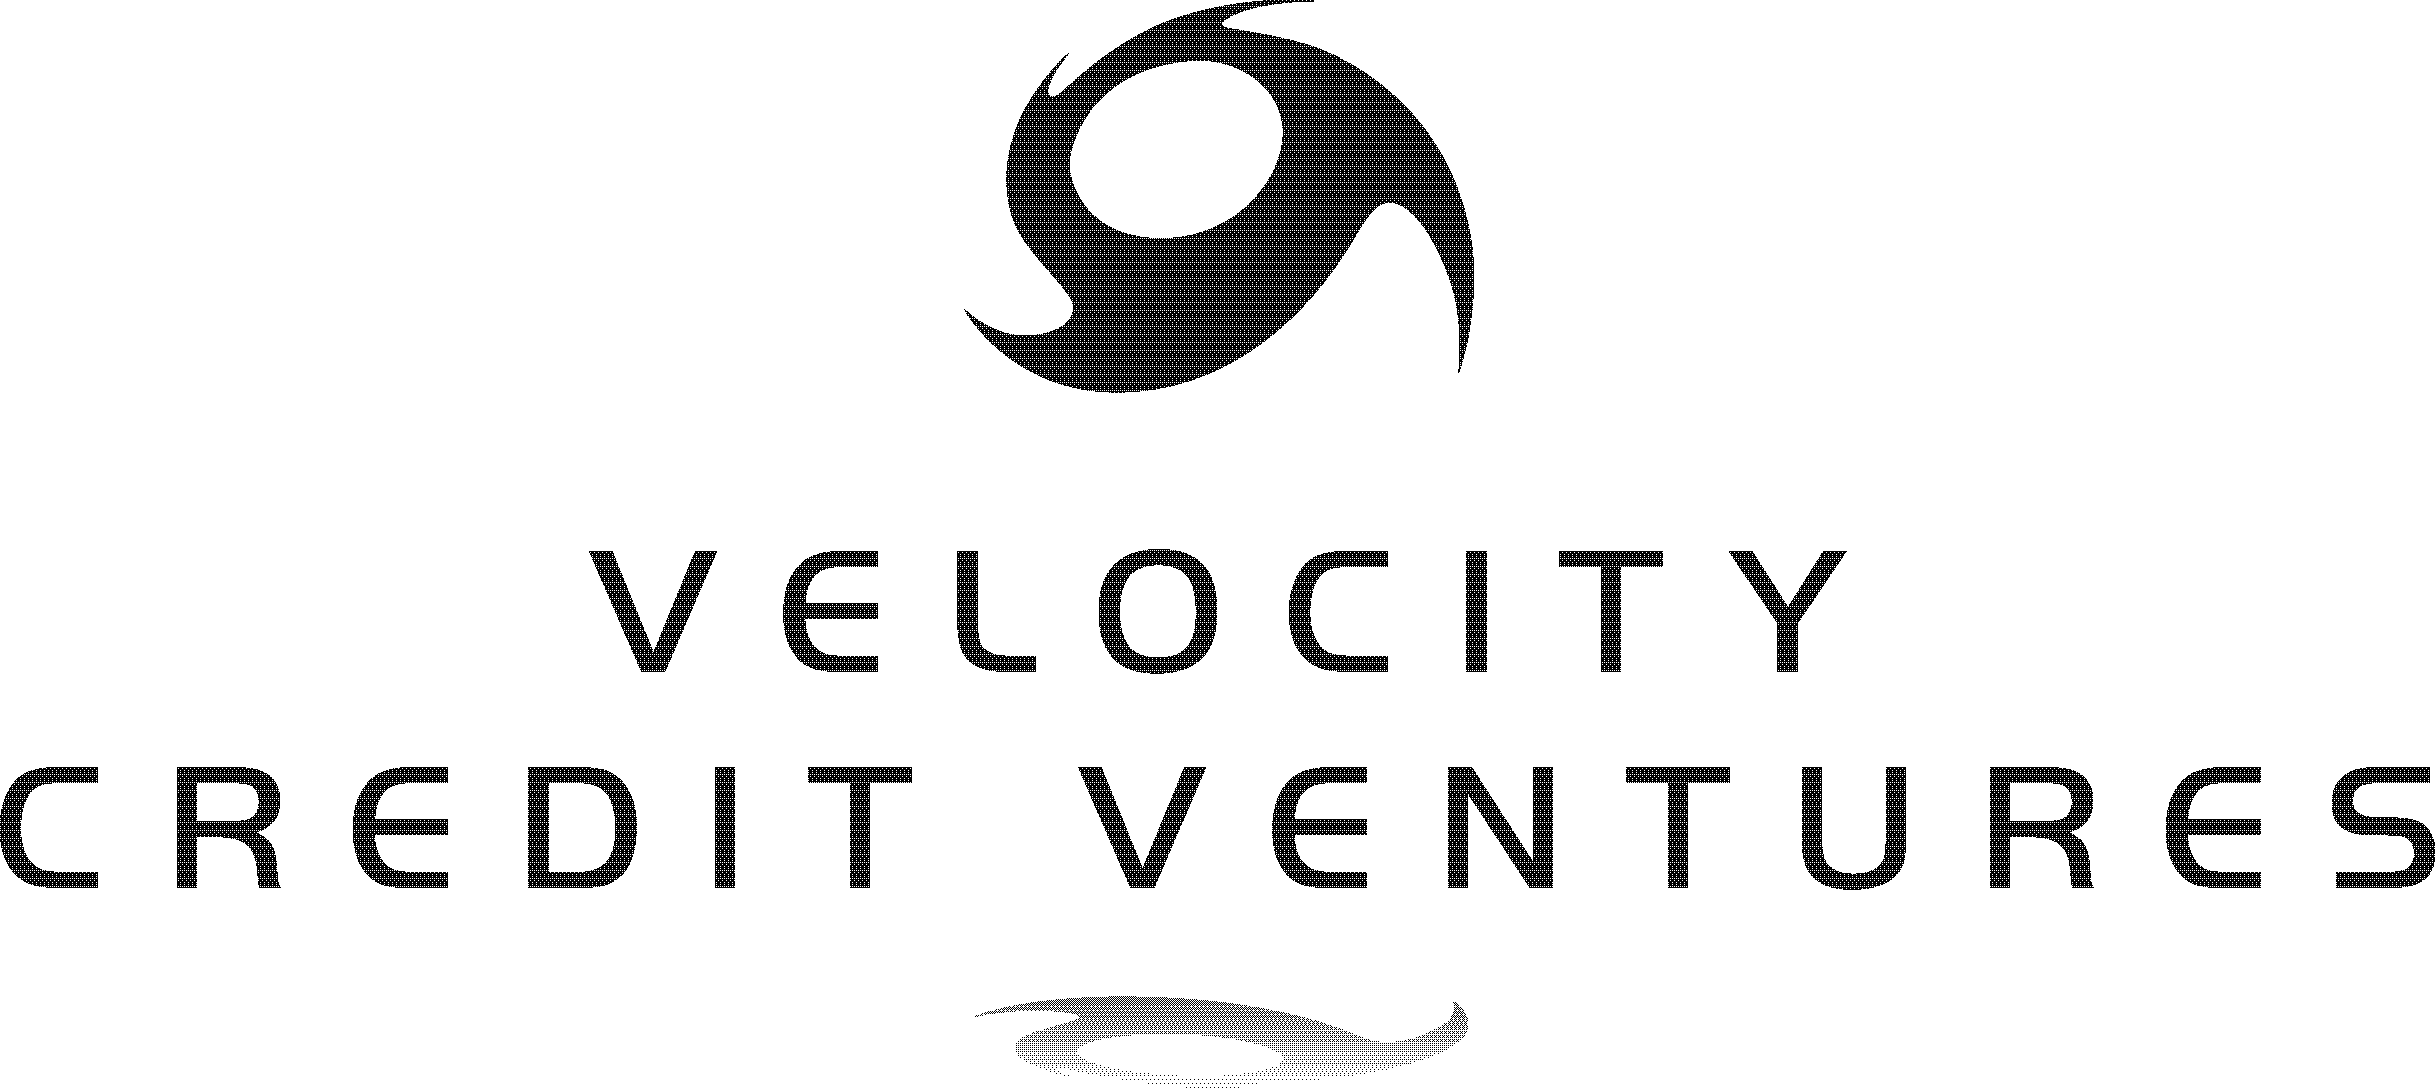 Velocity Credit Ventures Portfolio Management Service